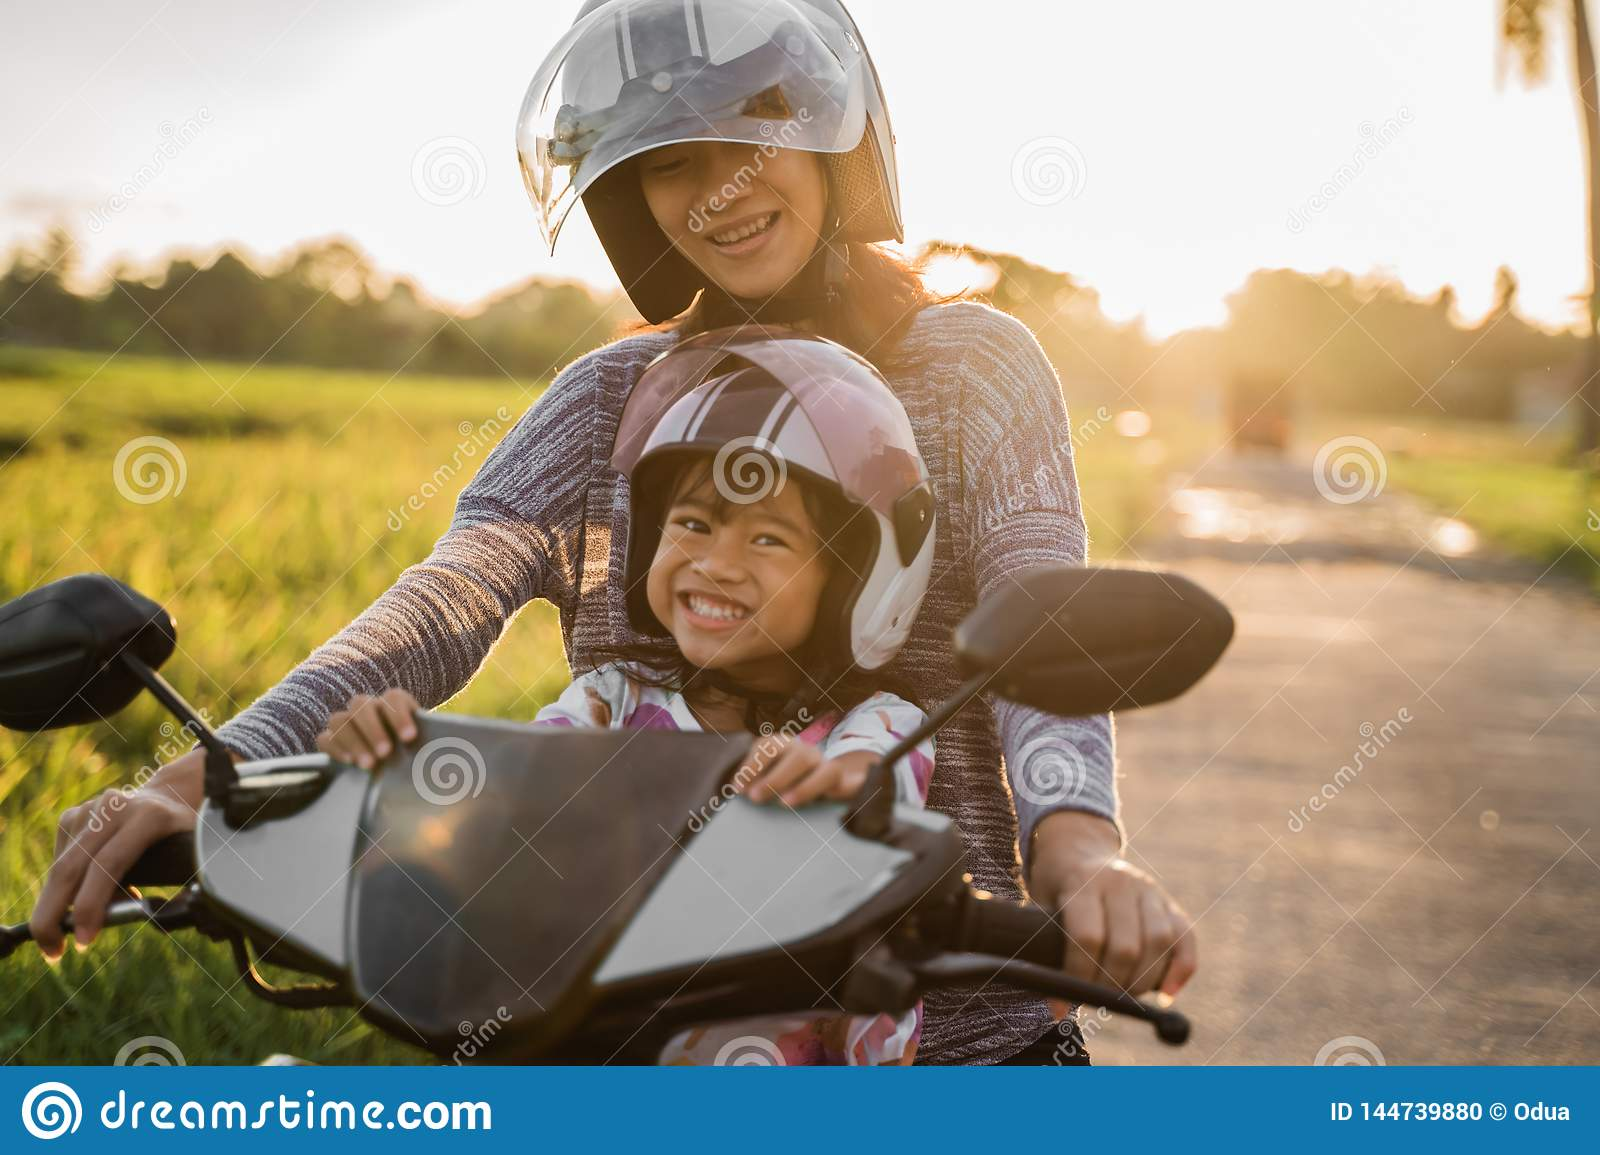 c460f85c457db Mom And Her Child Enjoy Riding Motorcycle Scooter Stock Photo ...